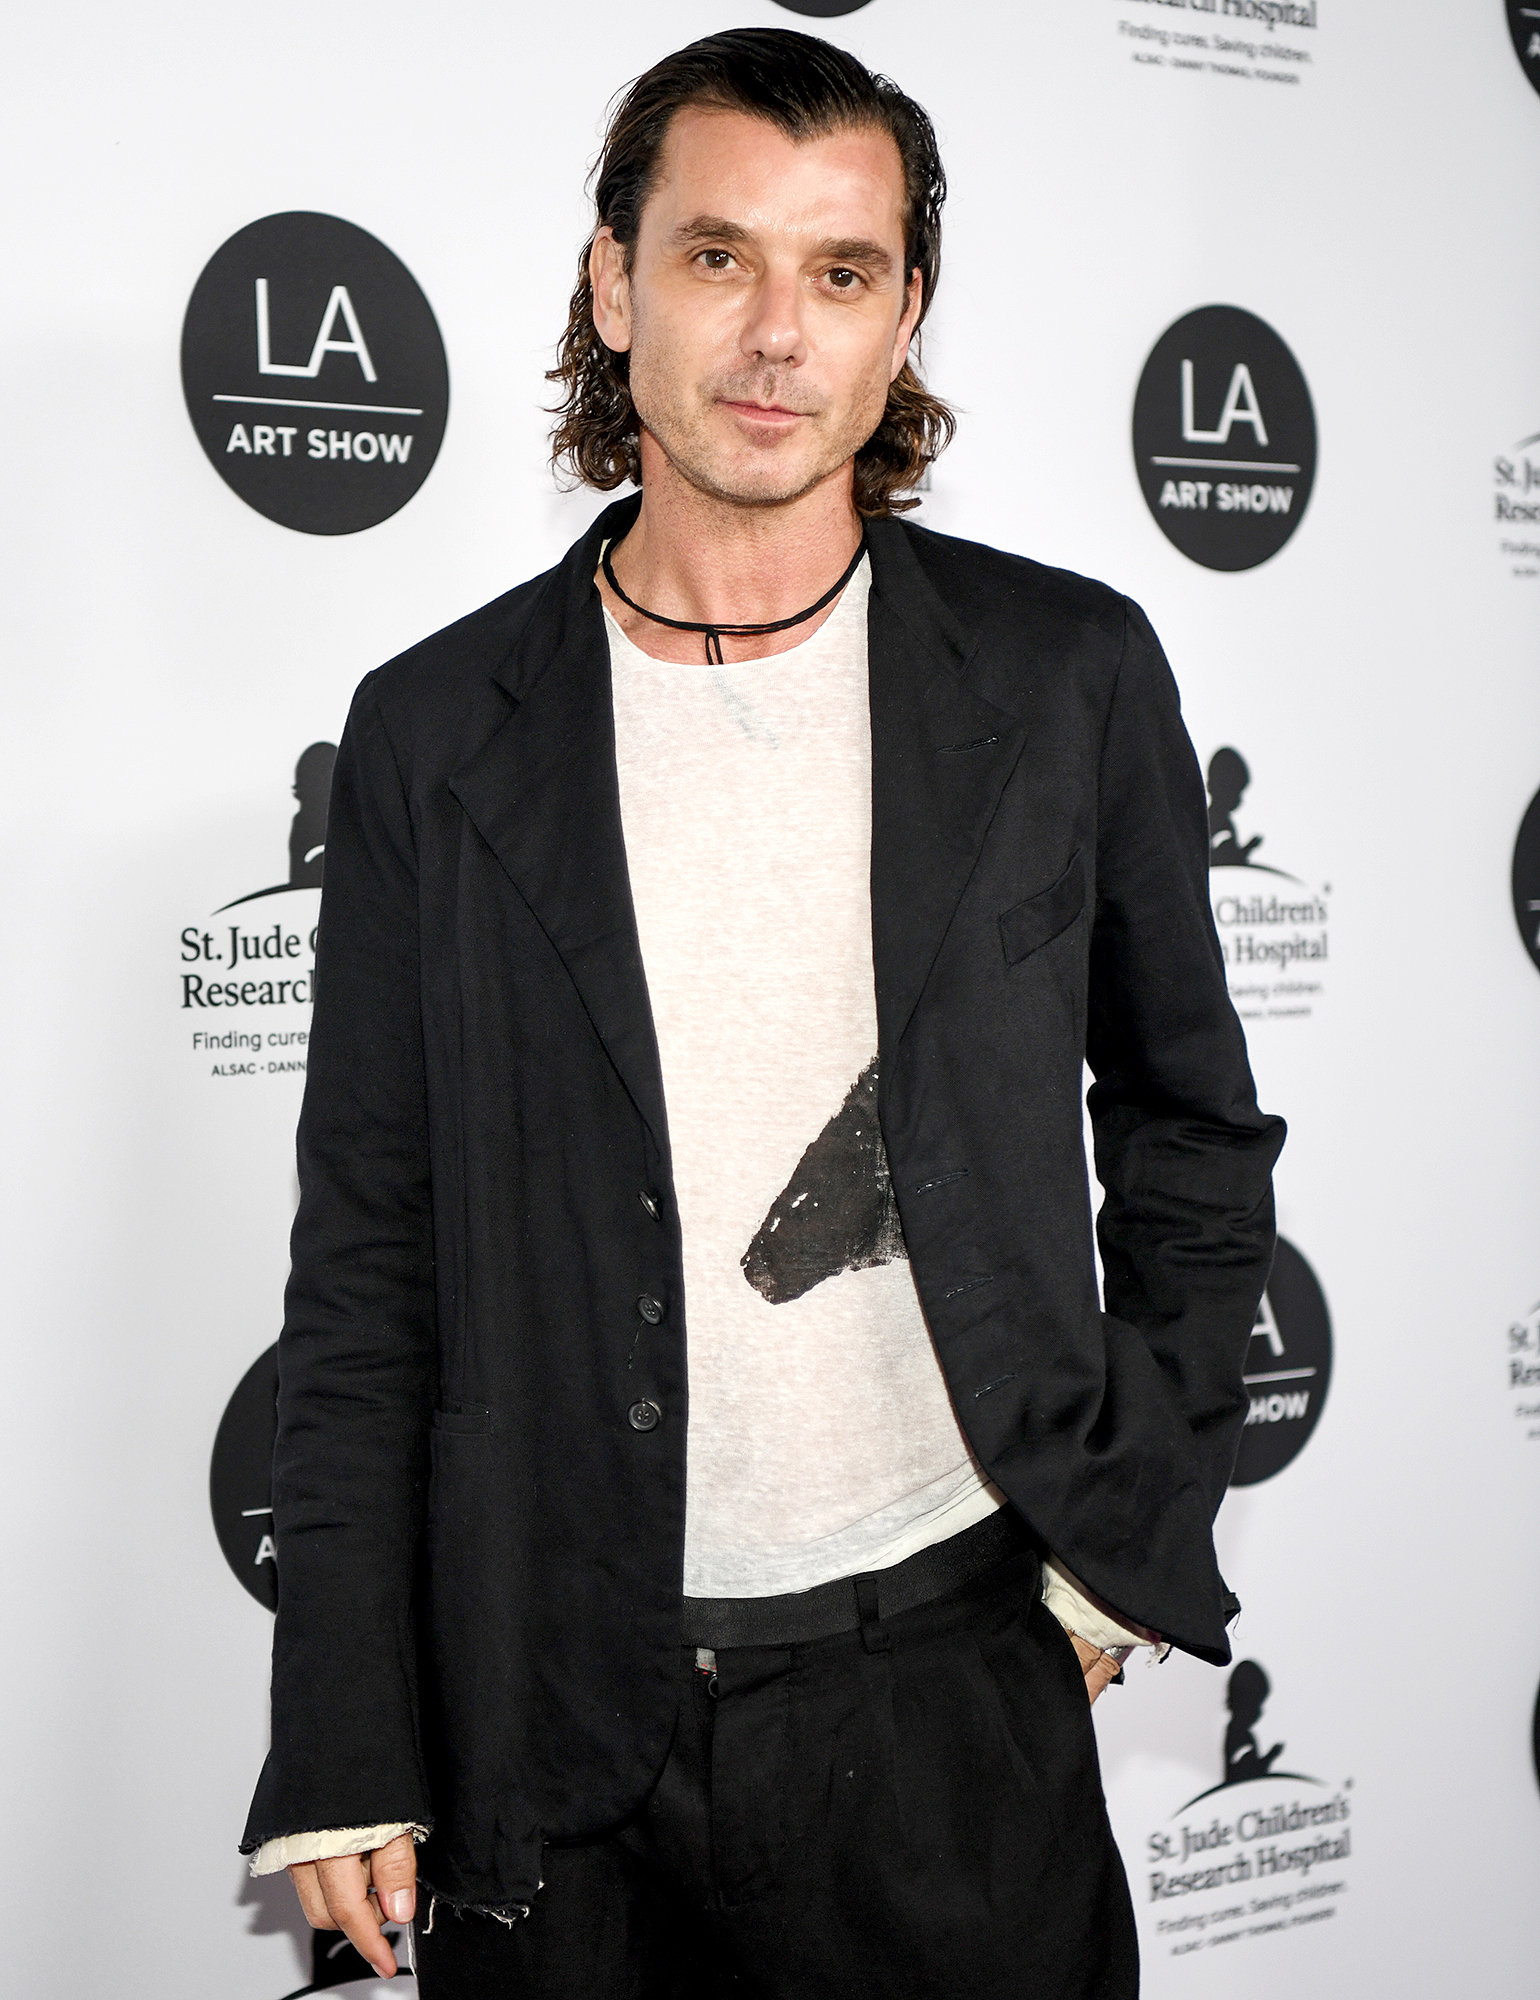 Gavin-Rossdale-LA-Art-Show - Gavin Rossdale arrives at the LA Art Show 2019 Opening Night Gala at the Los Angeles Convention Center on January 23, 2019 in Los Angeles, California.